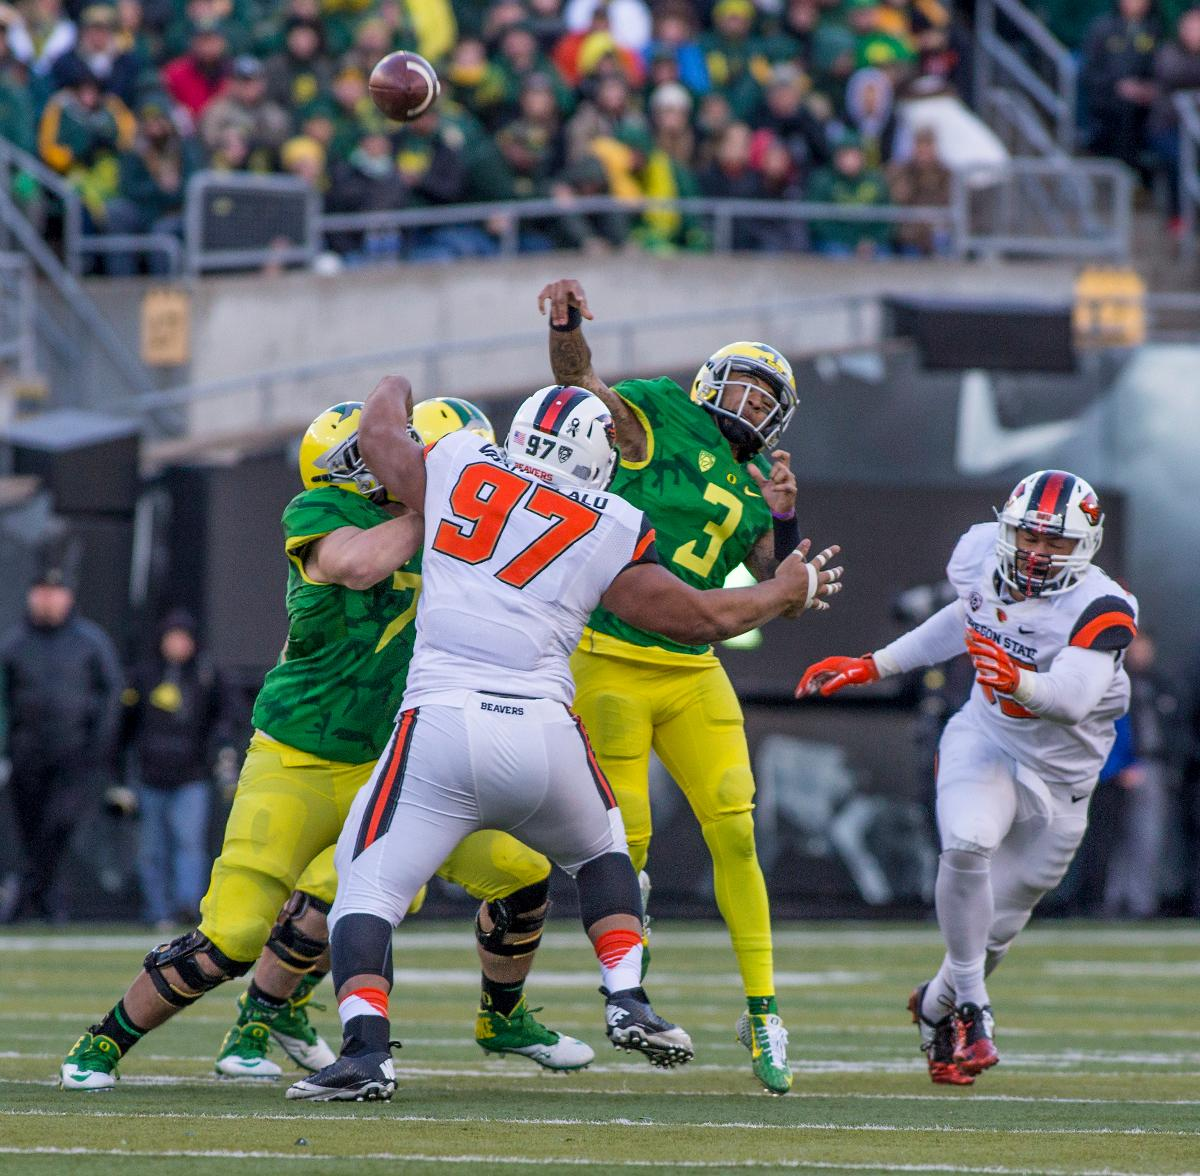 Oregon Ducks quarterback Vernon Adams Jr. (#3) throws the ball just before he�s tackled by Oregon State Beavers Kalani Vakameilalo (#97). The Oregon Ducks beat the Oregon State Beavers 52-42 in the 119th Civil War for the eighth year in a row at Autzen Stadium on Friday afternoon. Katie Pietzold, Oregon News Lab